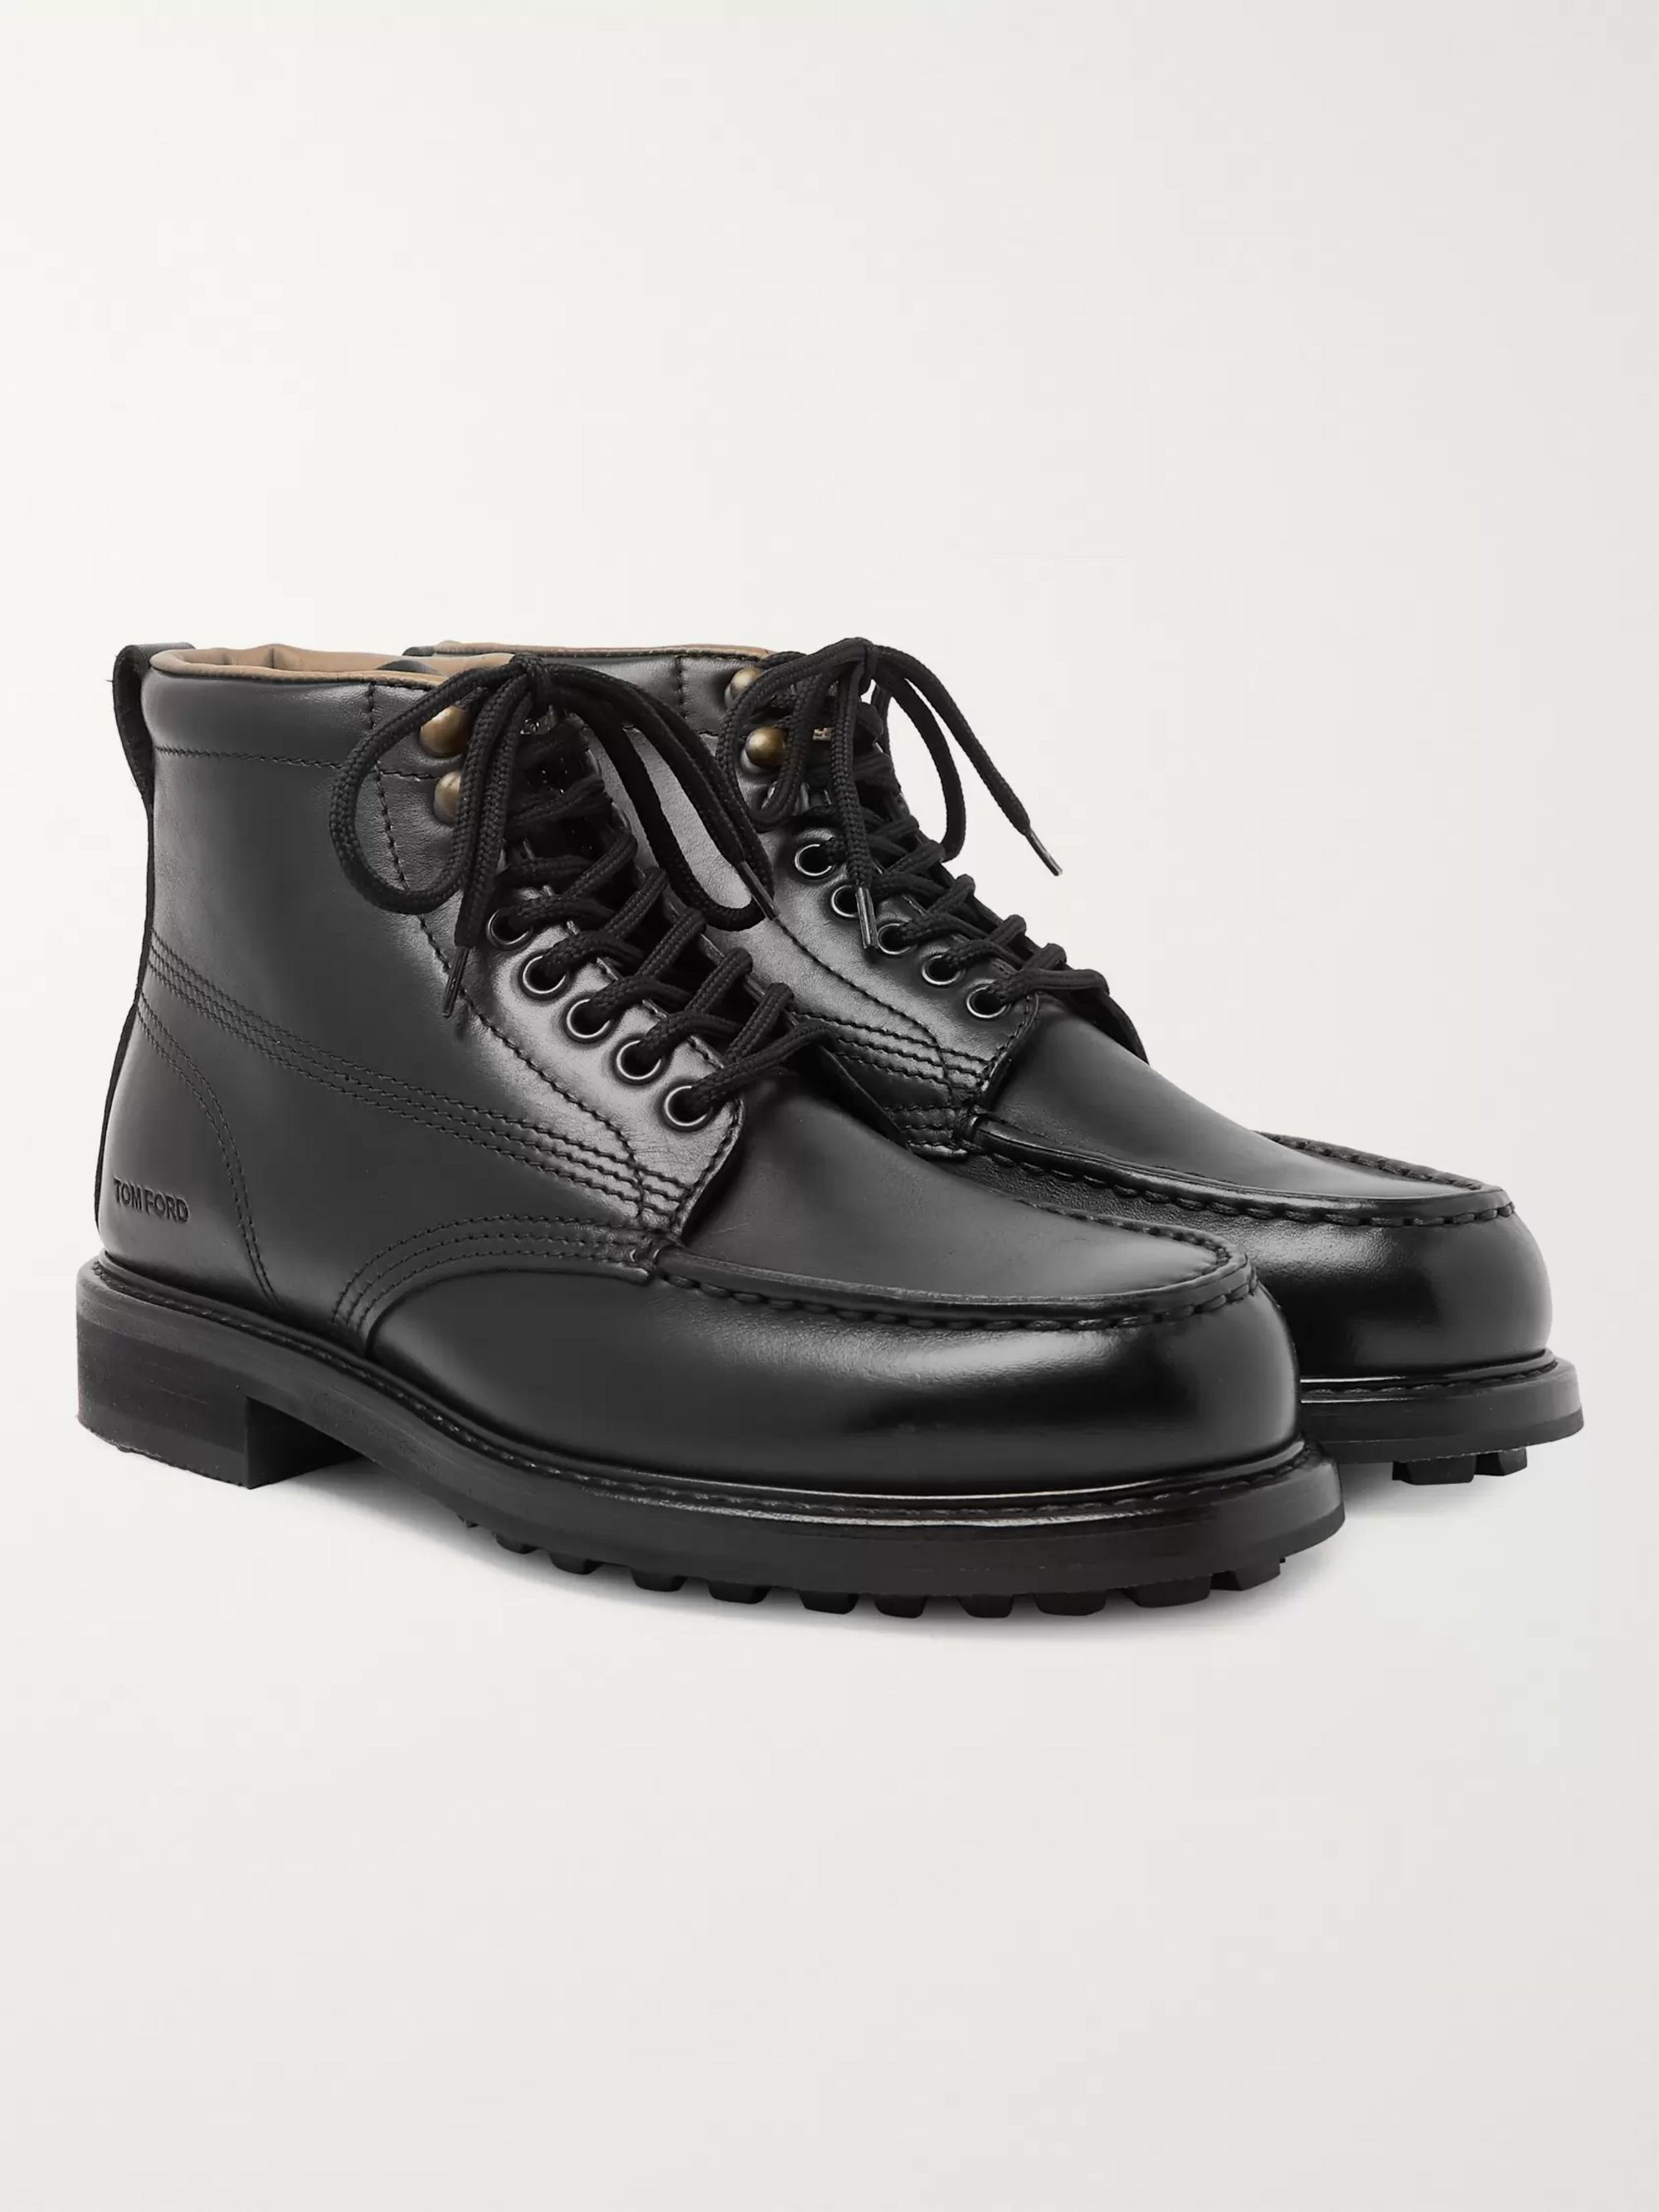 Cromwell Leather Hiking Boots by Tom Ford